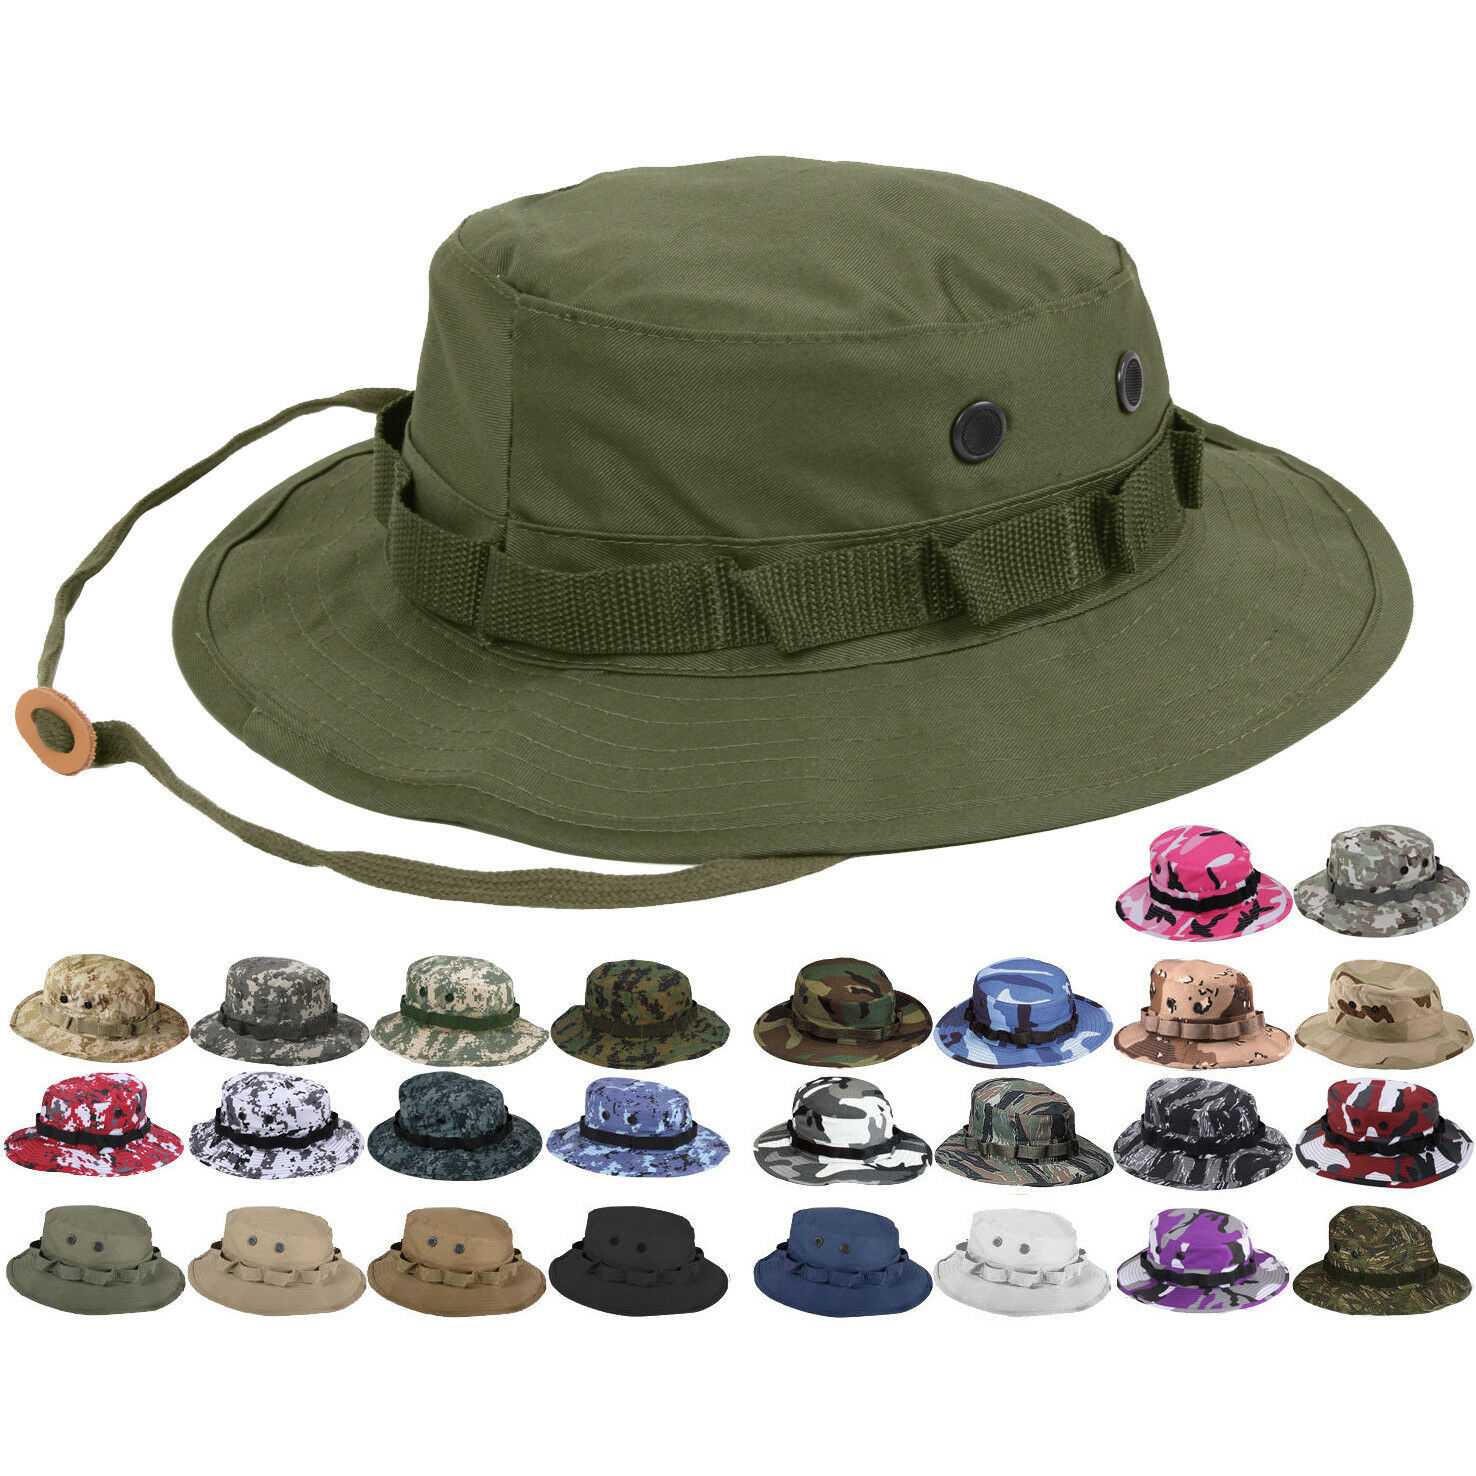 Primary image for Tactical Boonie Hat Military Camo Bucket Wide Brim Sun Fishing Bush Booney Cap